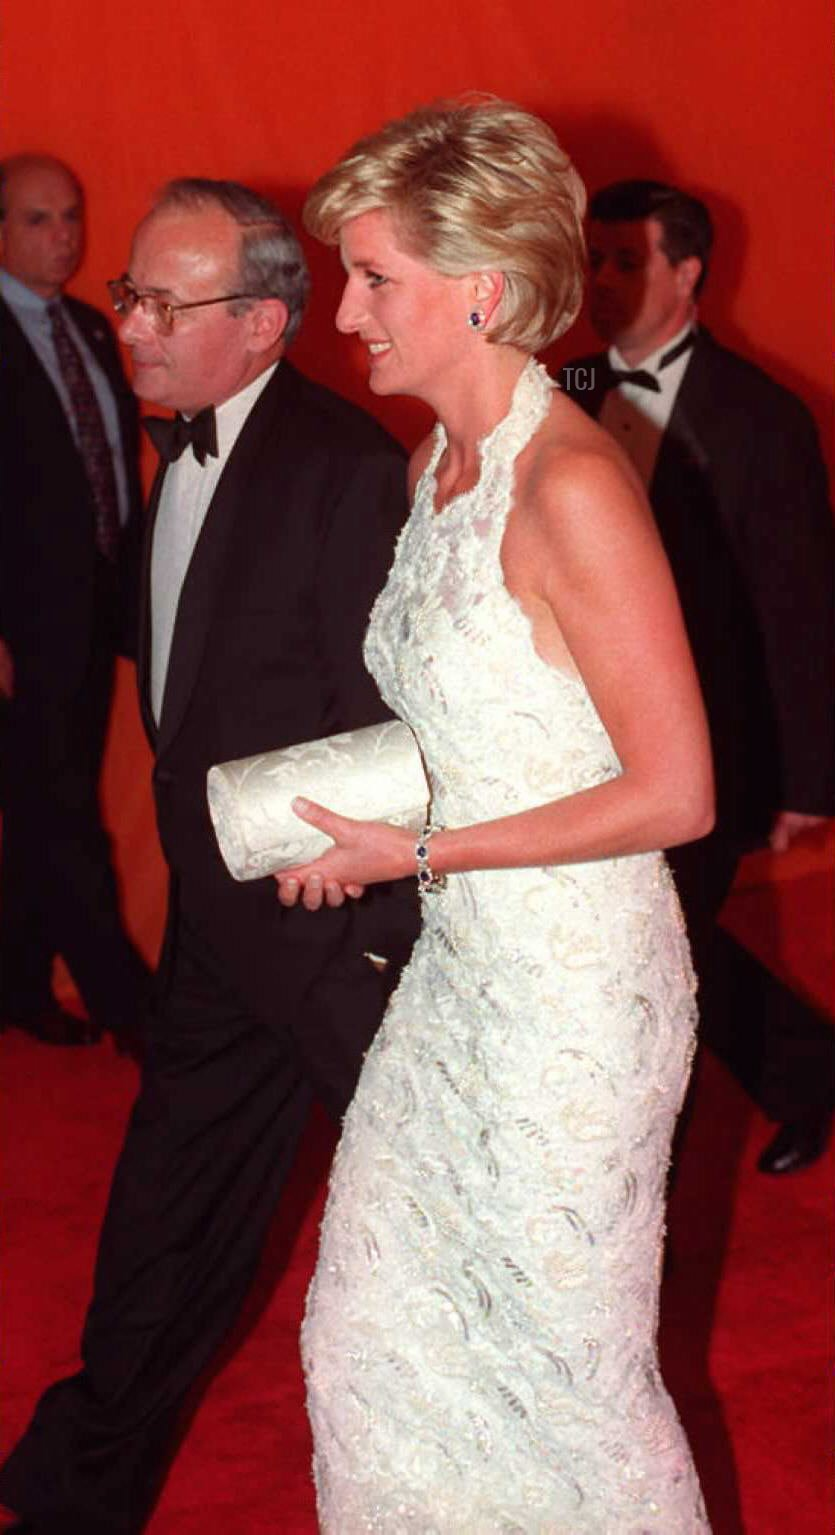 Britain's Princess Diana (R) and British Ambassador to the US David Kerr arrive at the Nina Hyde Gala fund raising benefit for breast cancer research 24 September 1996 in Washinton, DC